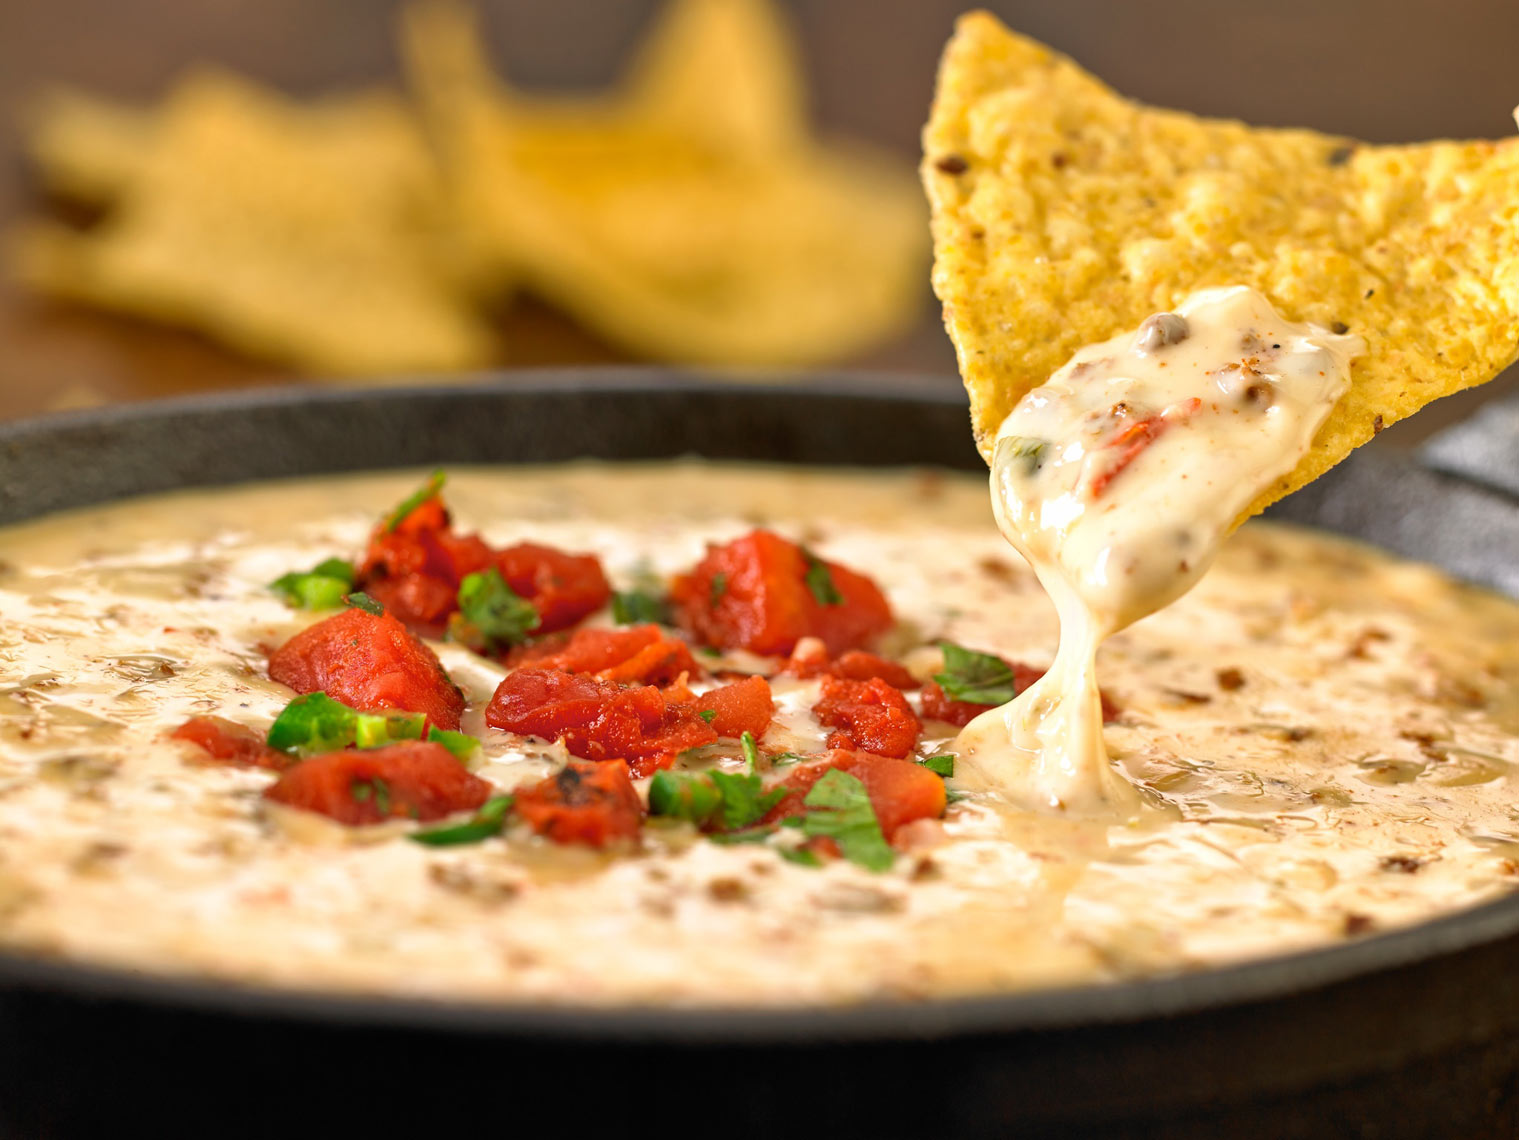 White queso/corn tortilla chip/dipping/food photography